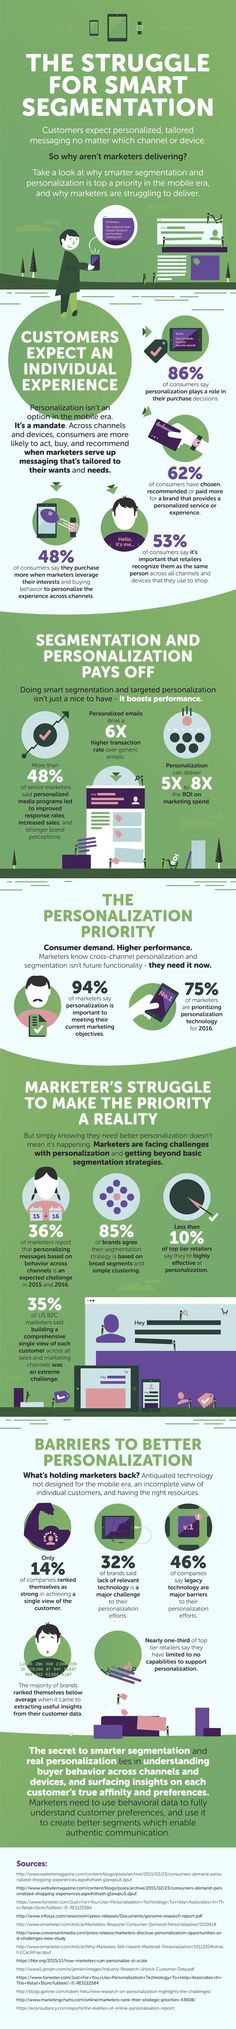 The Struggle for Smart Segmentation #Infographic #Advertising #Marketing